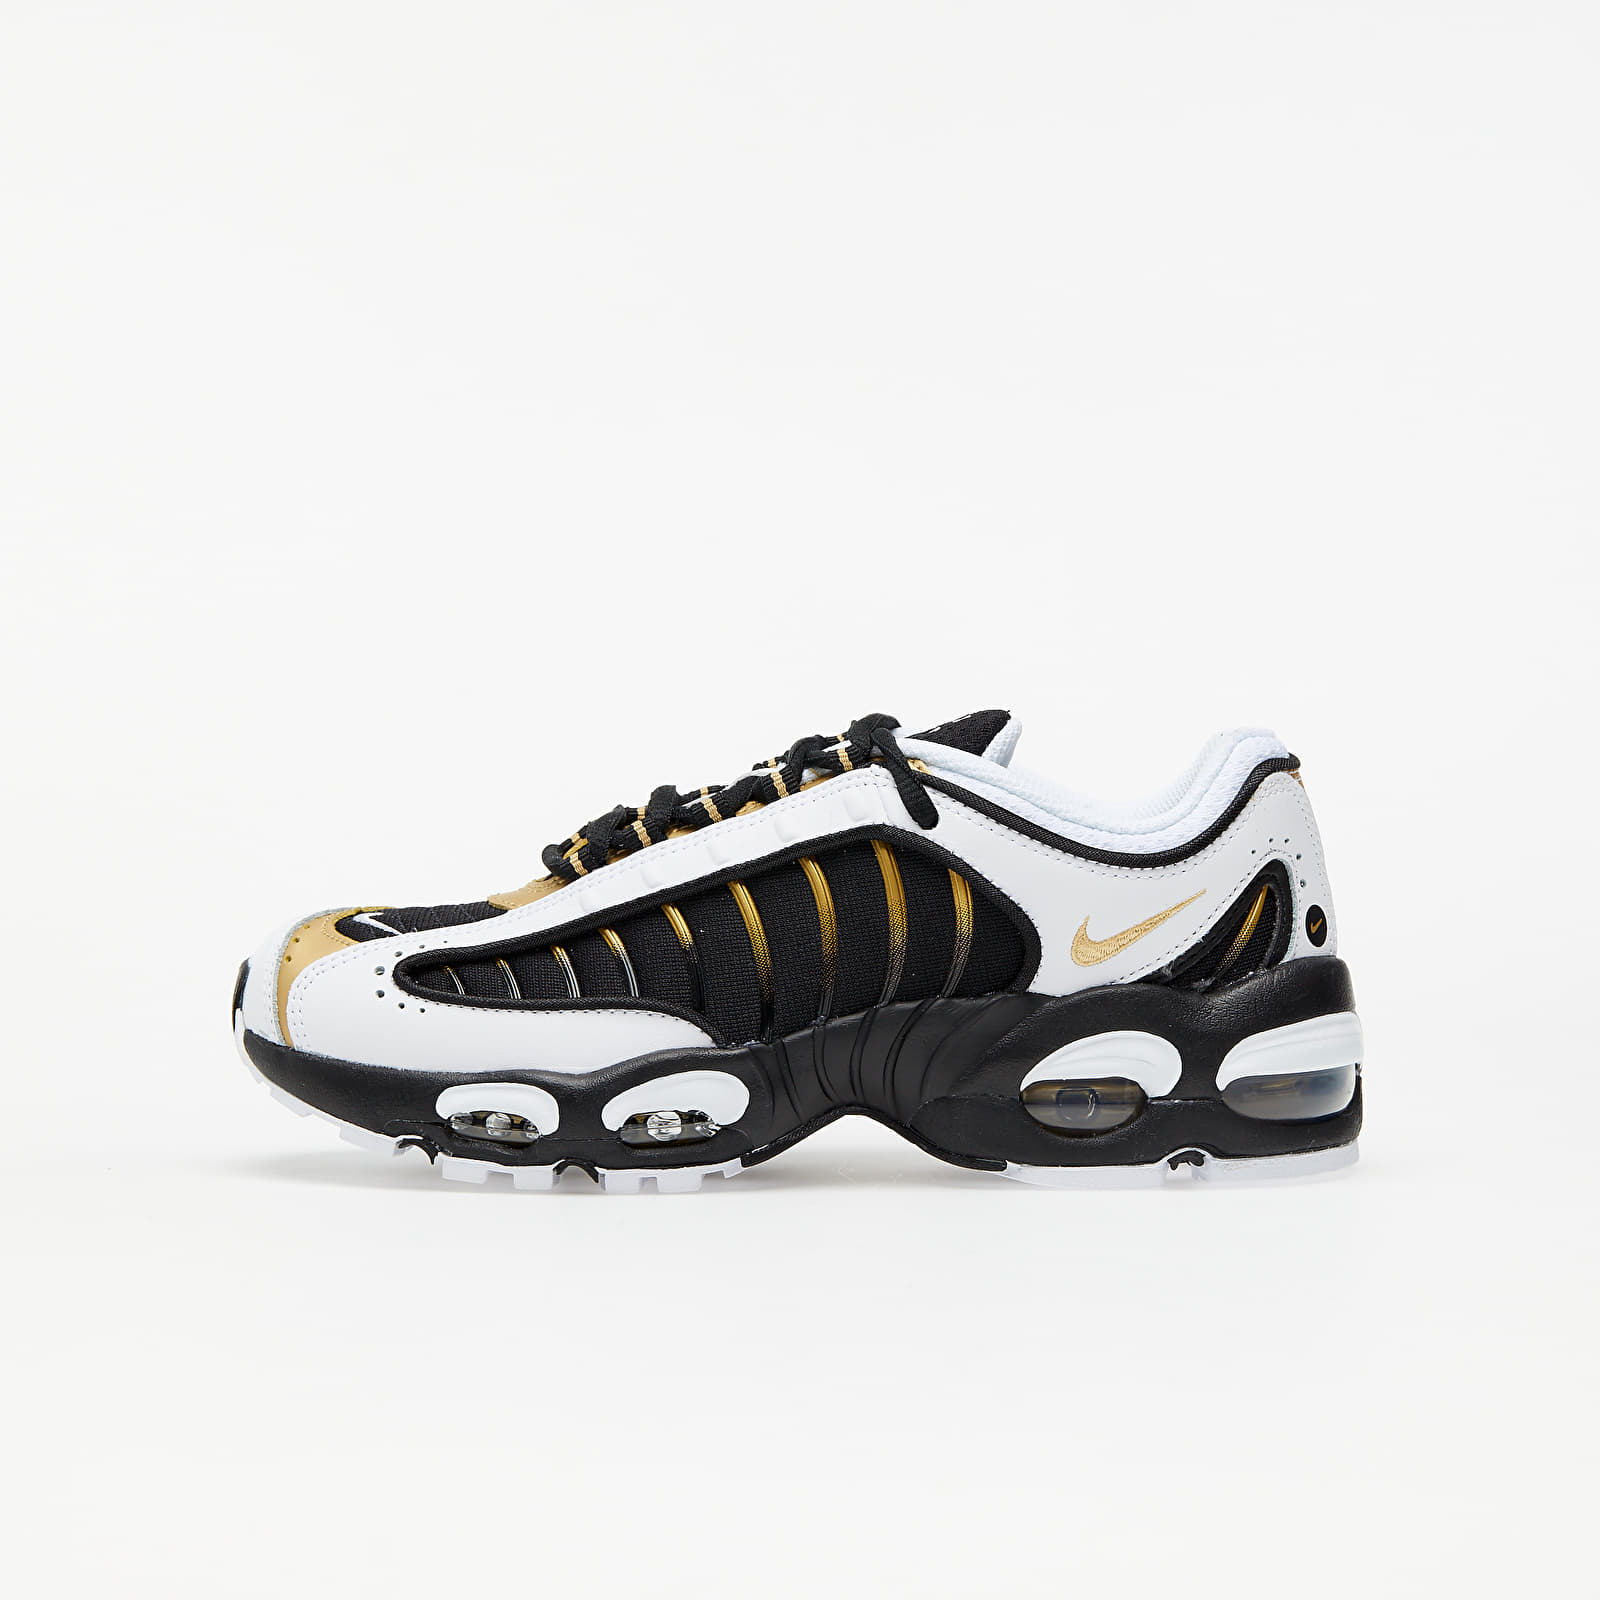 Nike Air Max Tailwind IV GS Black/ Metallic Gold-White EUR 36.5